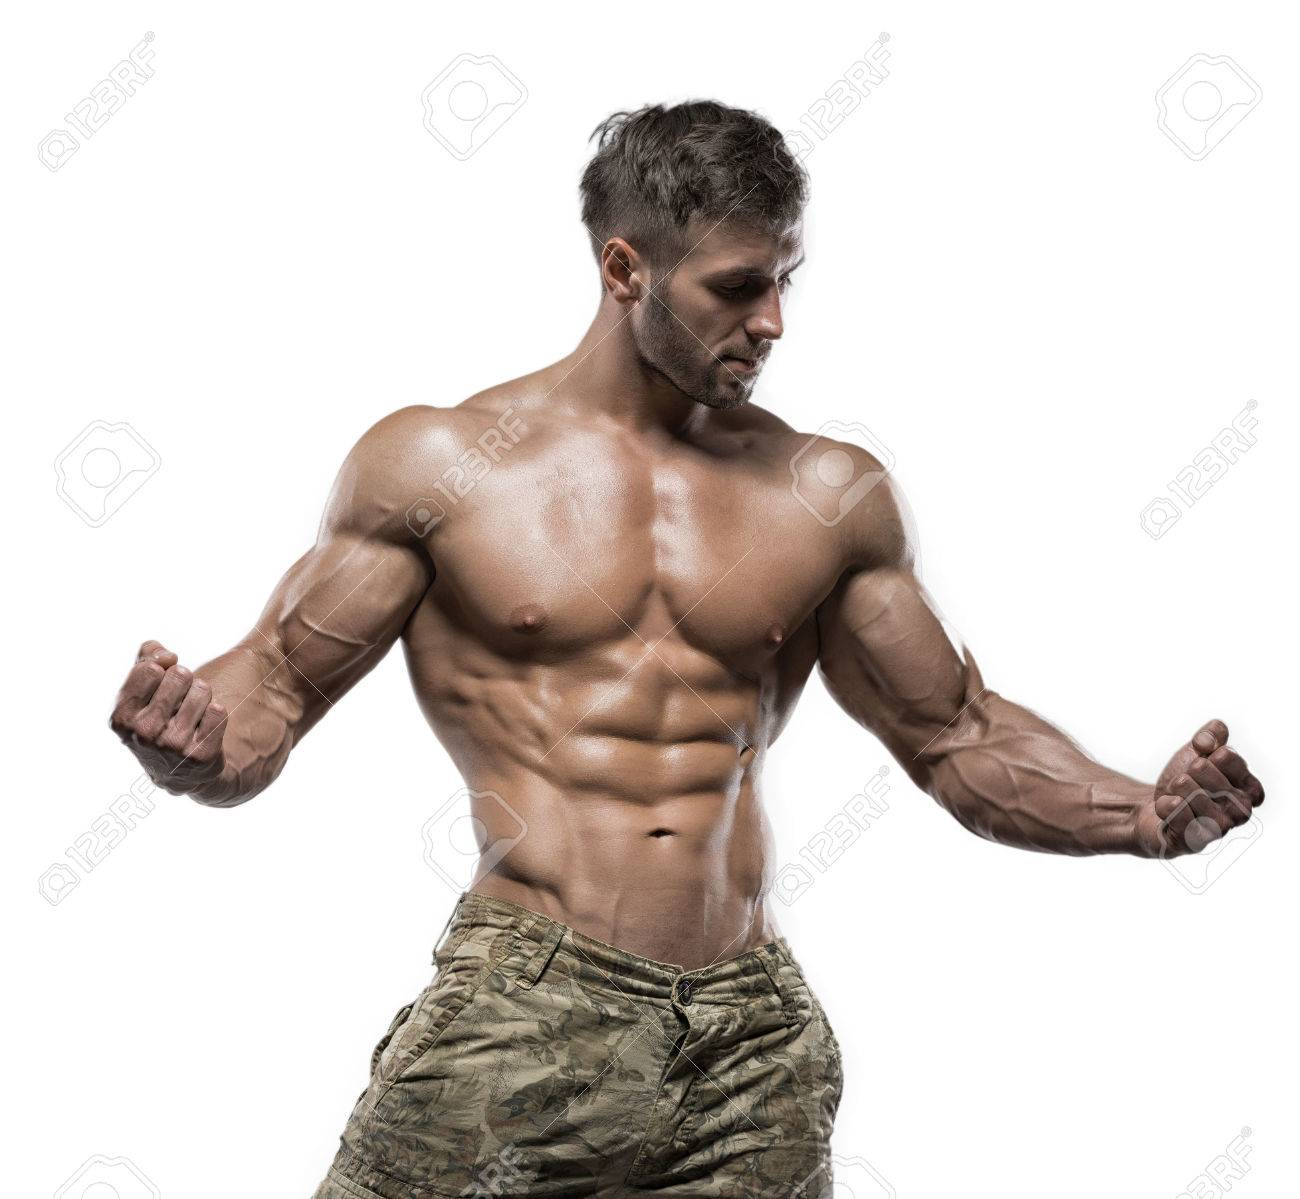 Young Handsome Muscular Man Bodybuilder Posing In The Studio Stock Photo Picture And Royalty Free Image Image 63466899 Many muscular men make the mistake of sizing up because they think they need the extra room for their extra bulk. young handsome muscular man bodybuilder posing in the studio